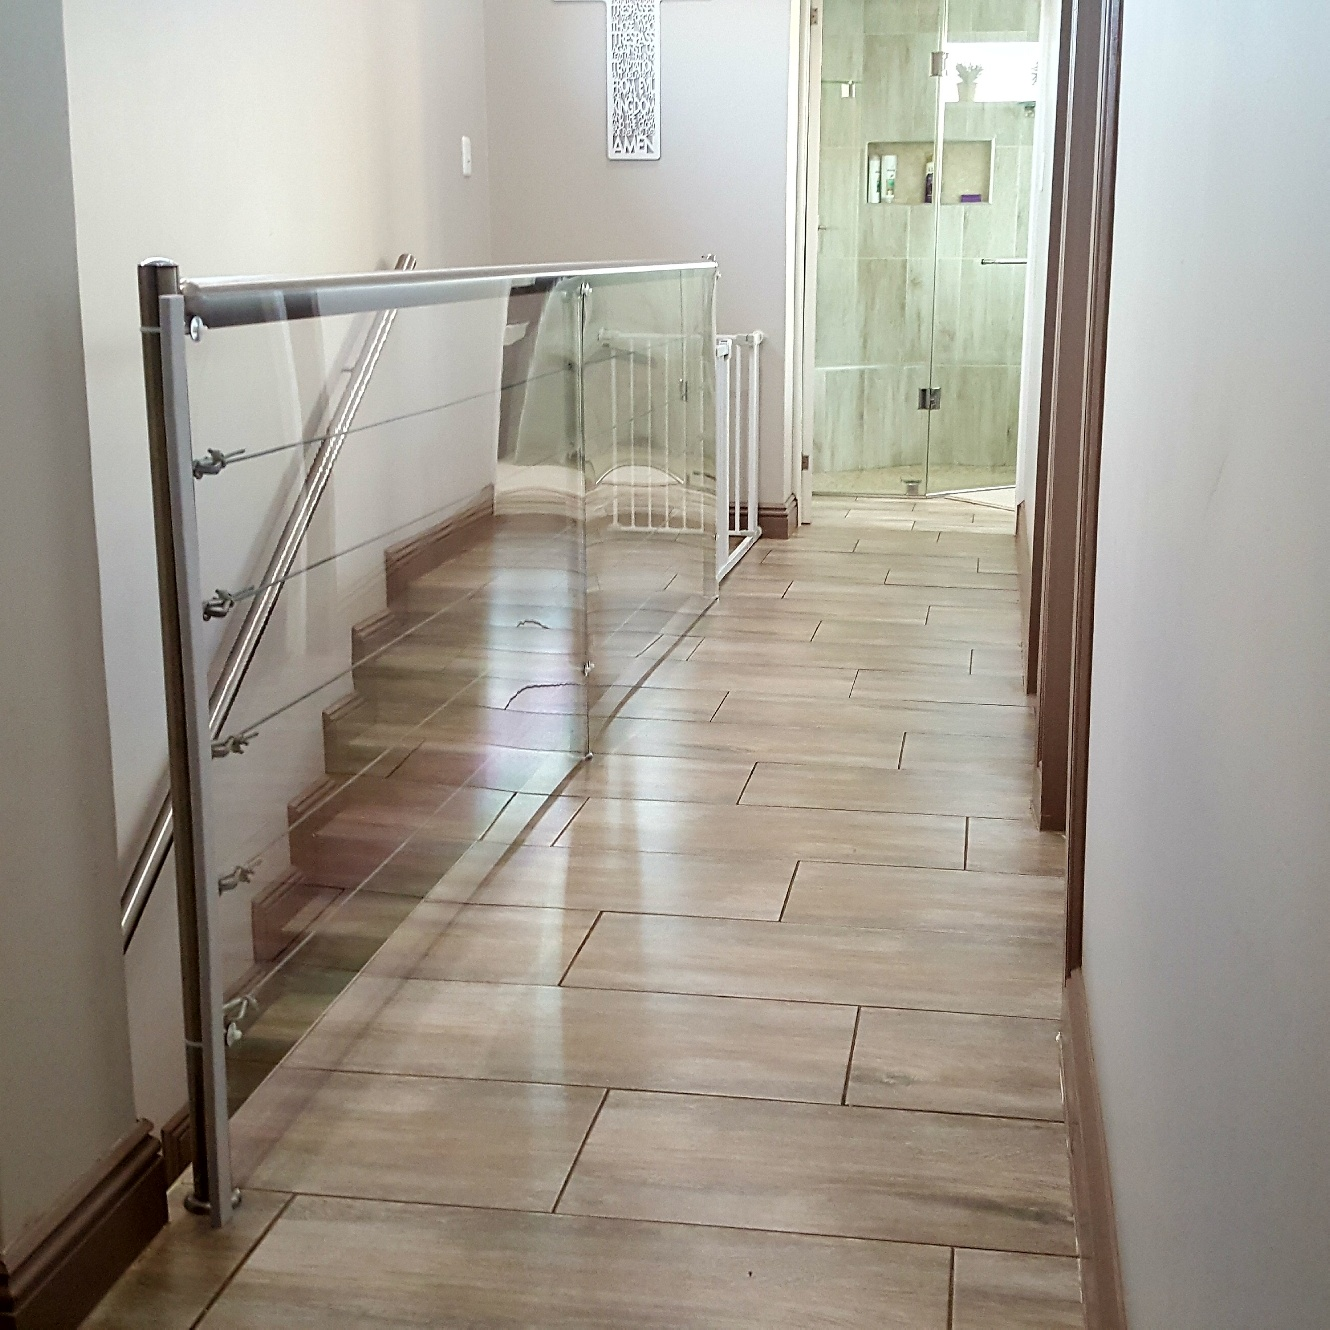 2mm-clear-polycarbonate-south-africa-childproofing--indoor-balcony